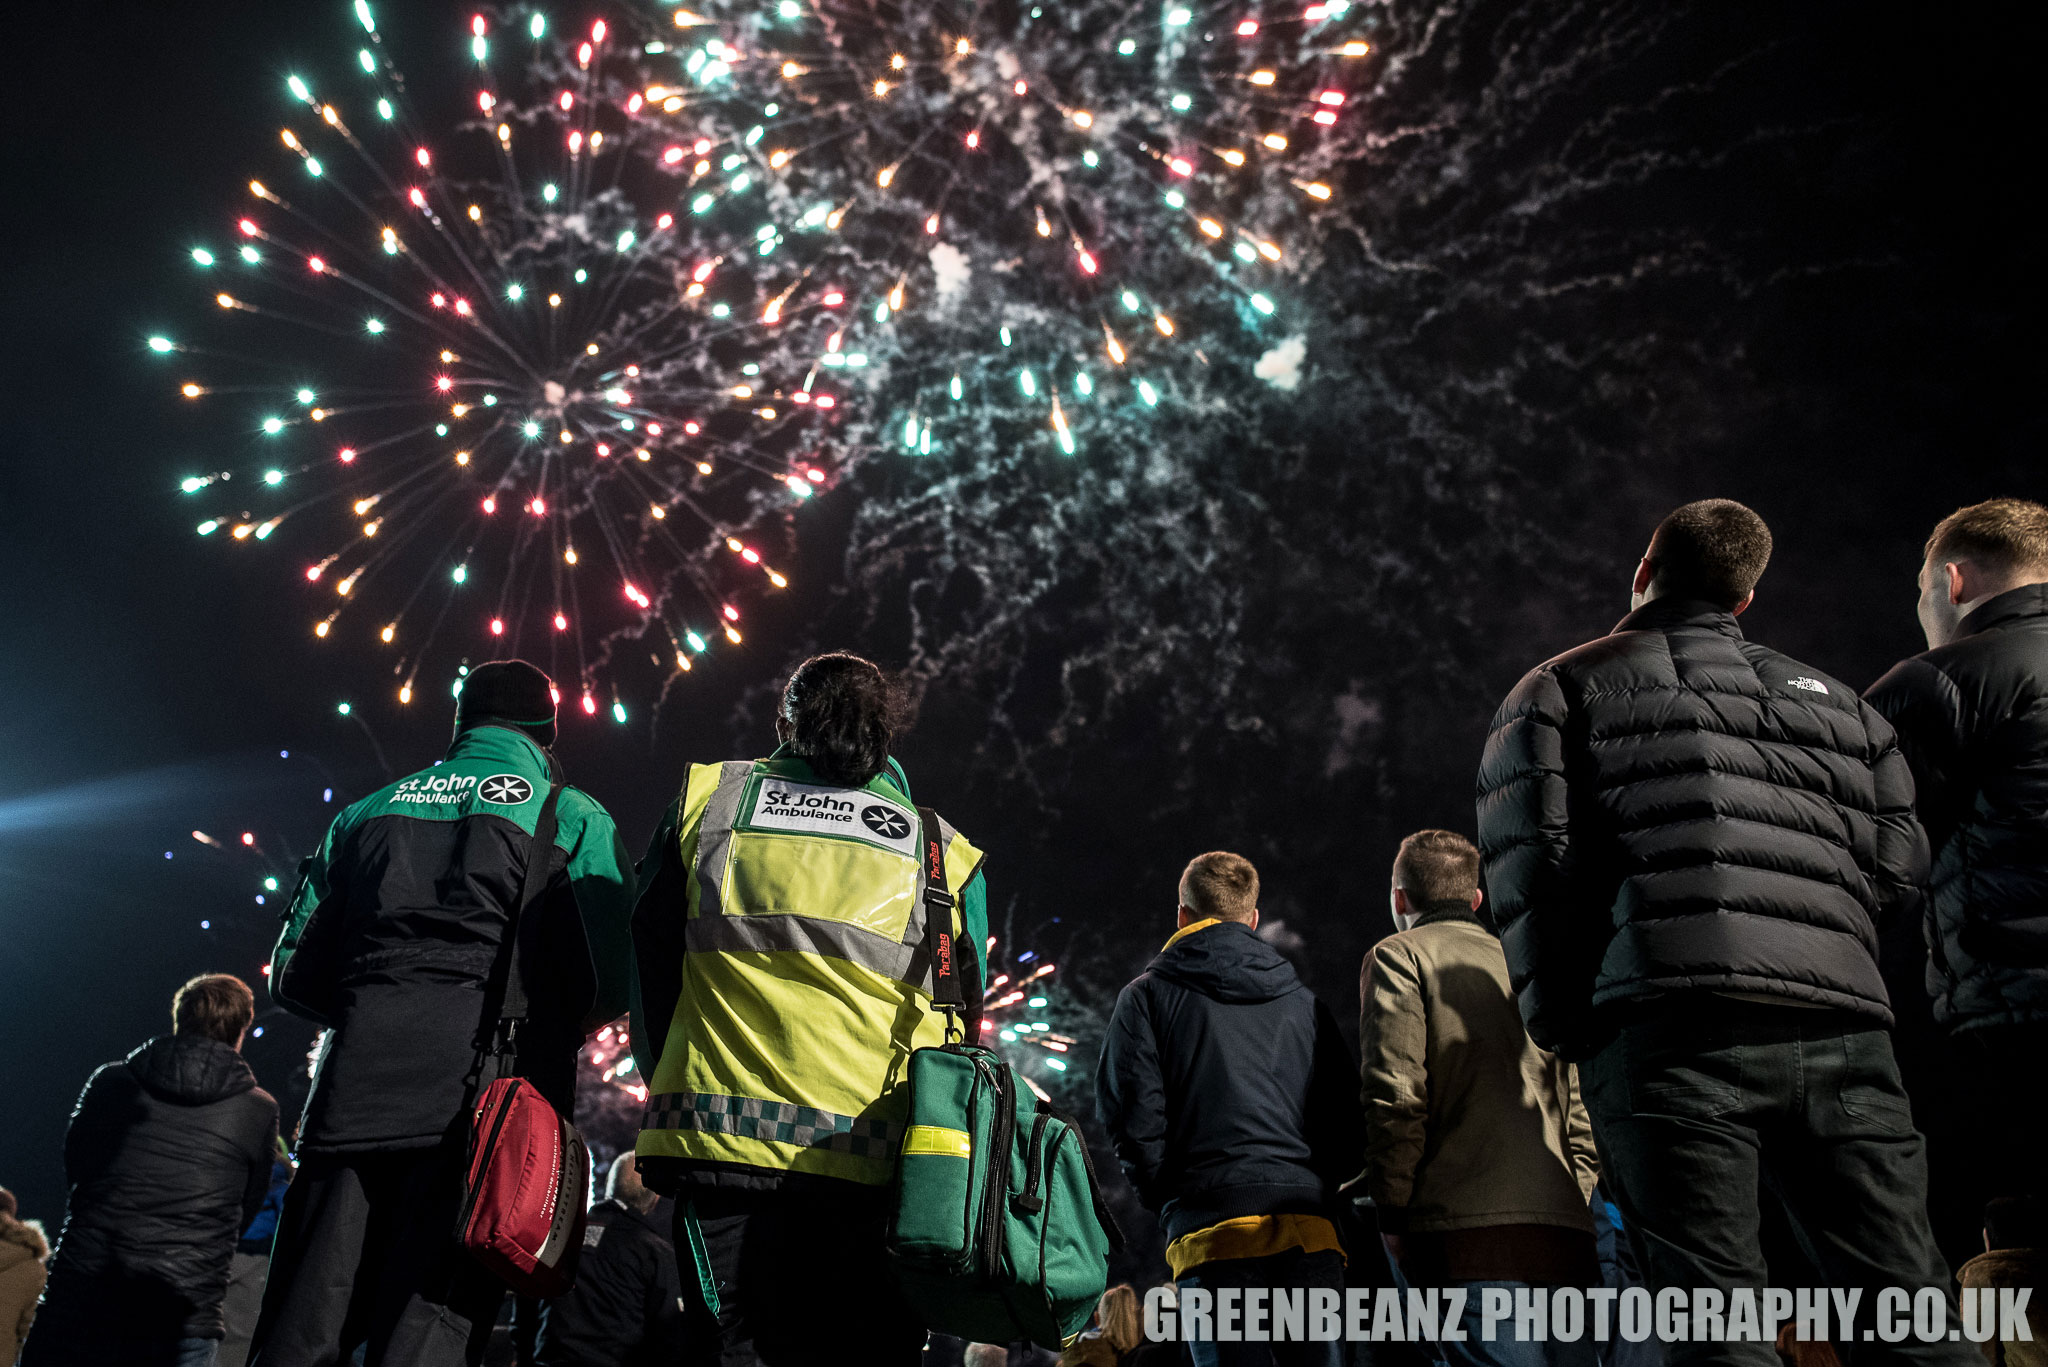 Plymouth 2019 fireworks shooting a national campaign for St Johns Ambulance